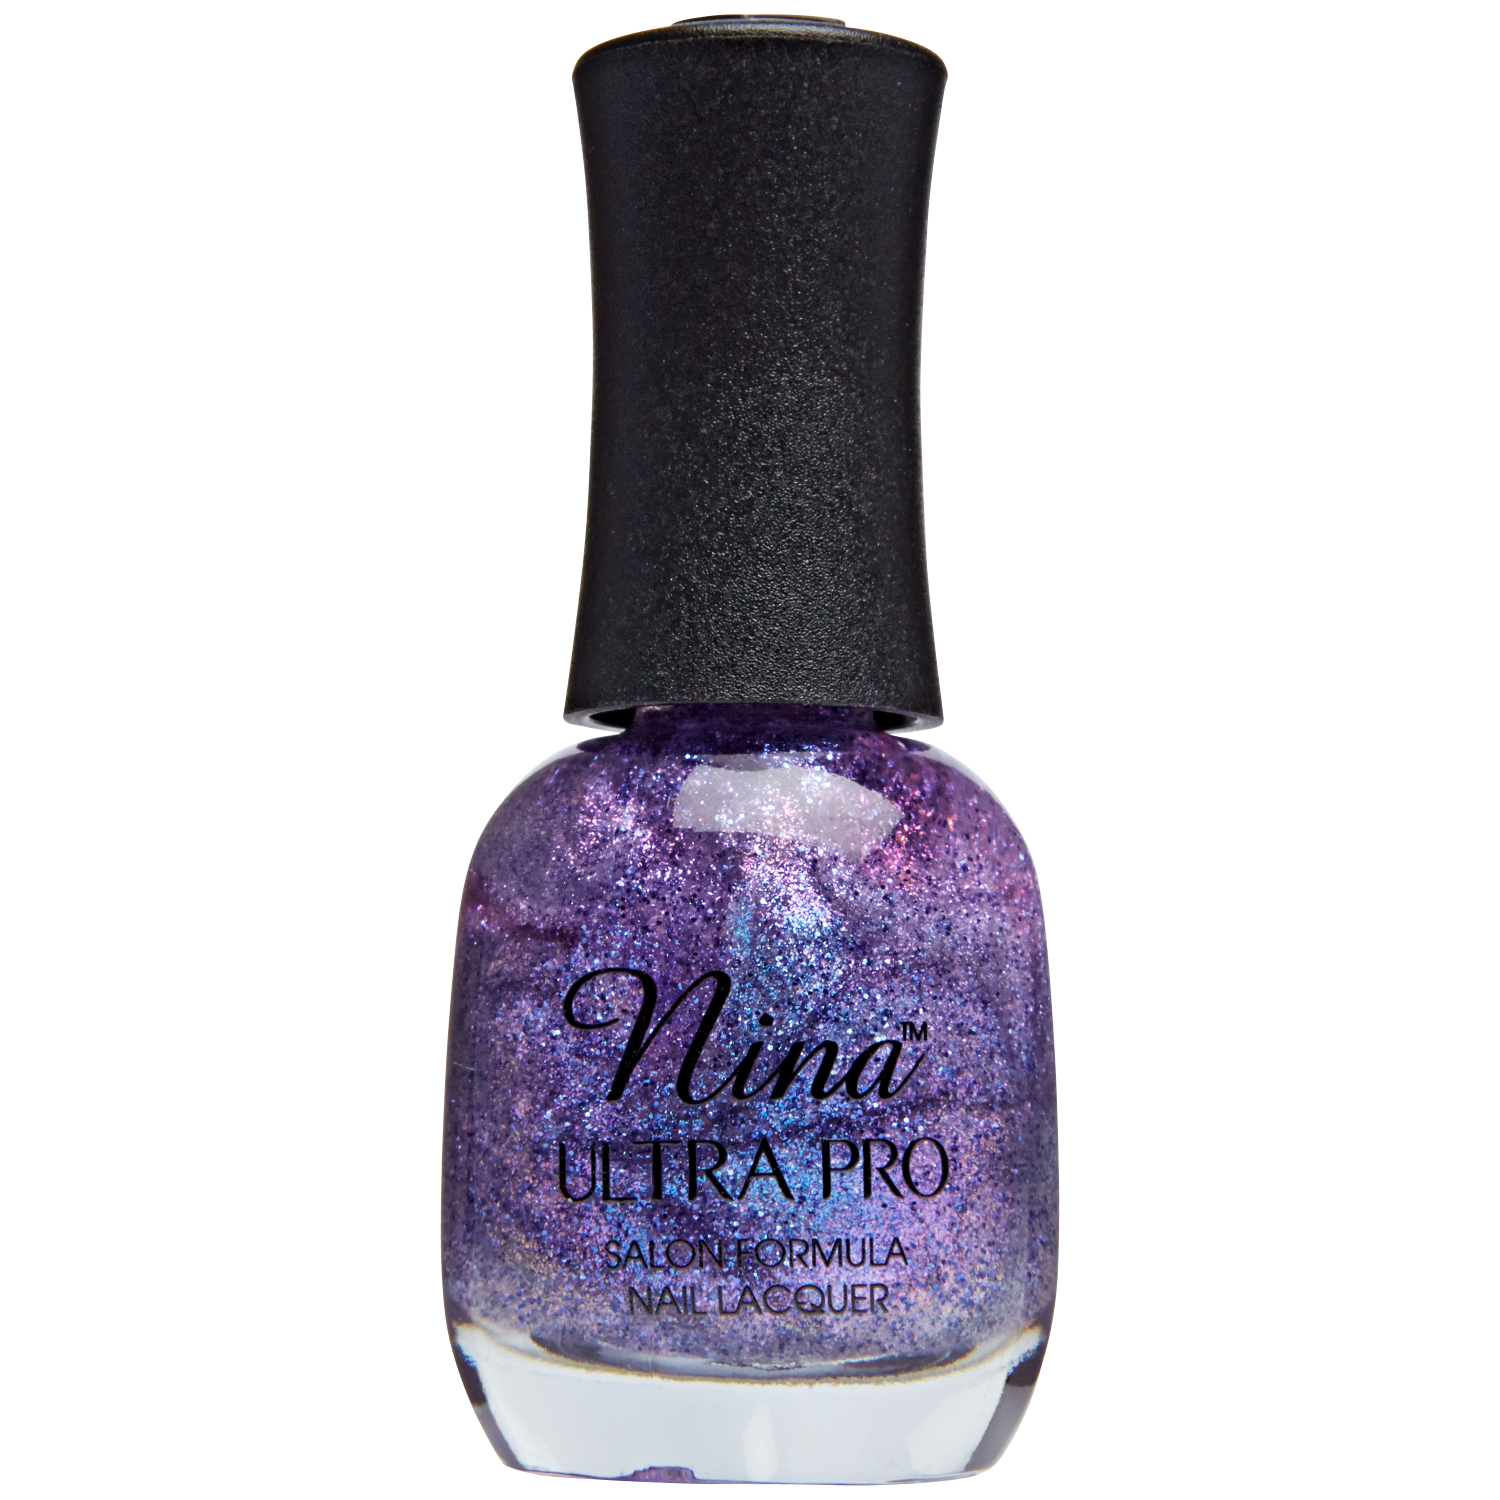 Butterfly Wings Nail Lacquer | Nail polish collection